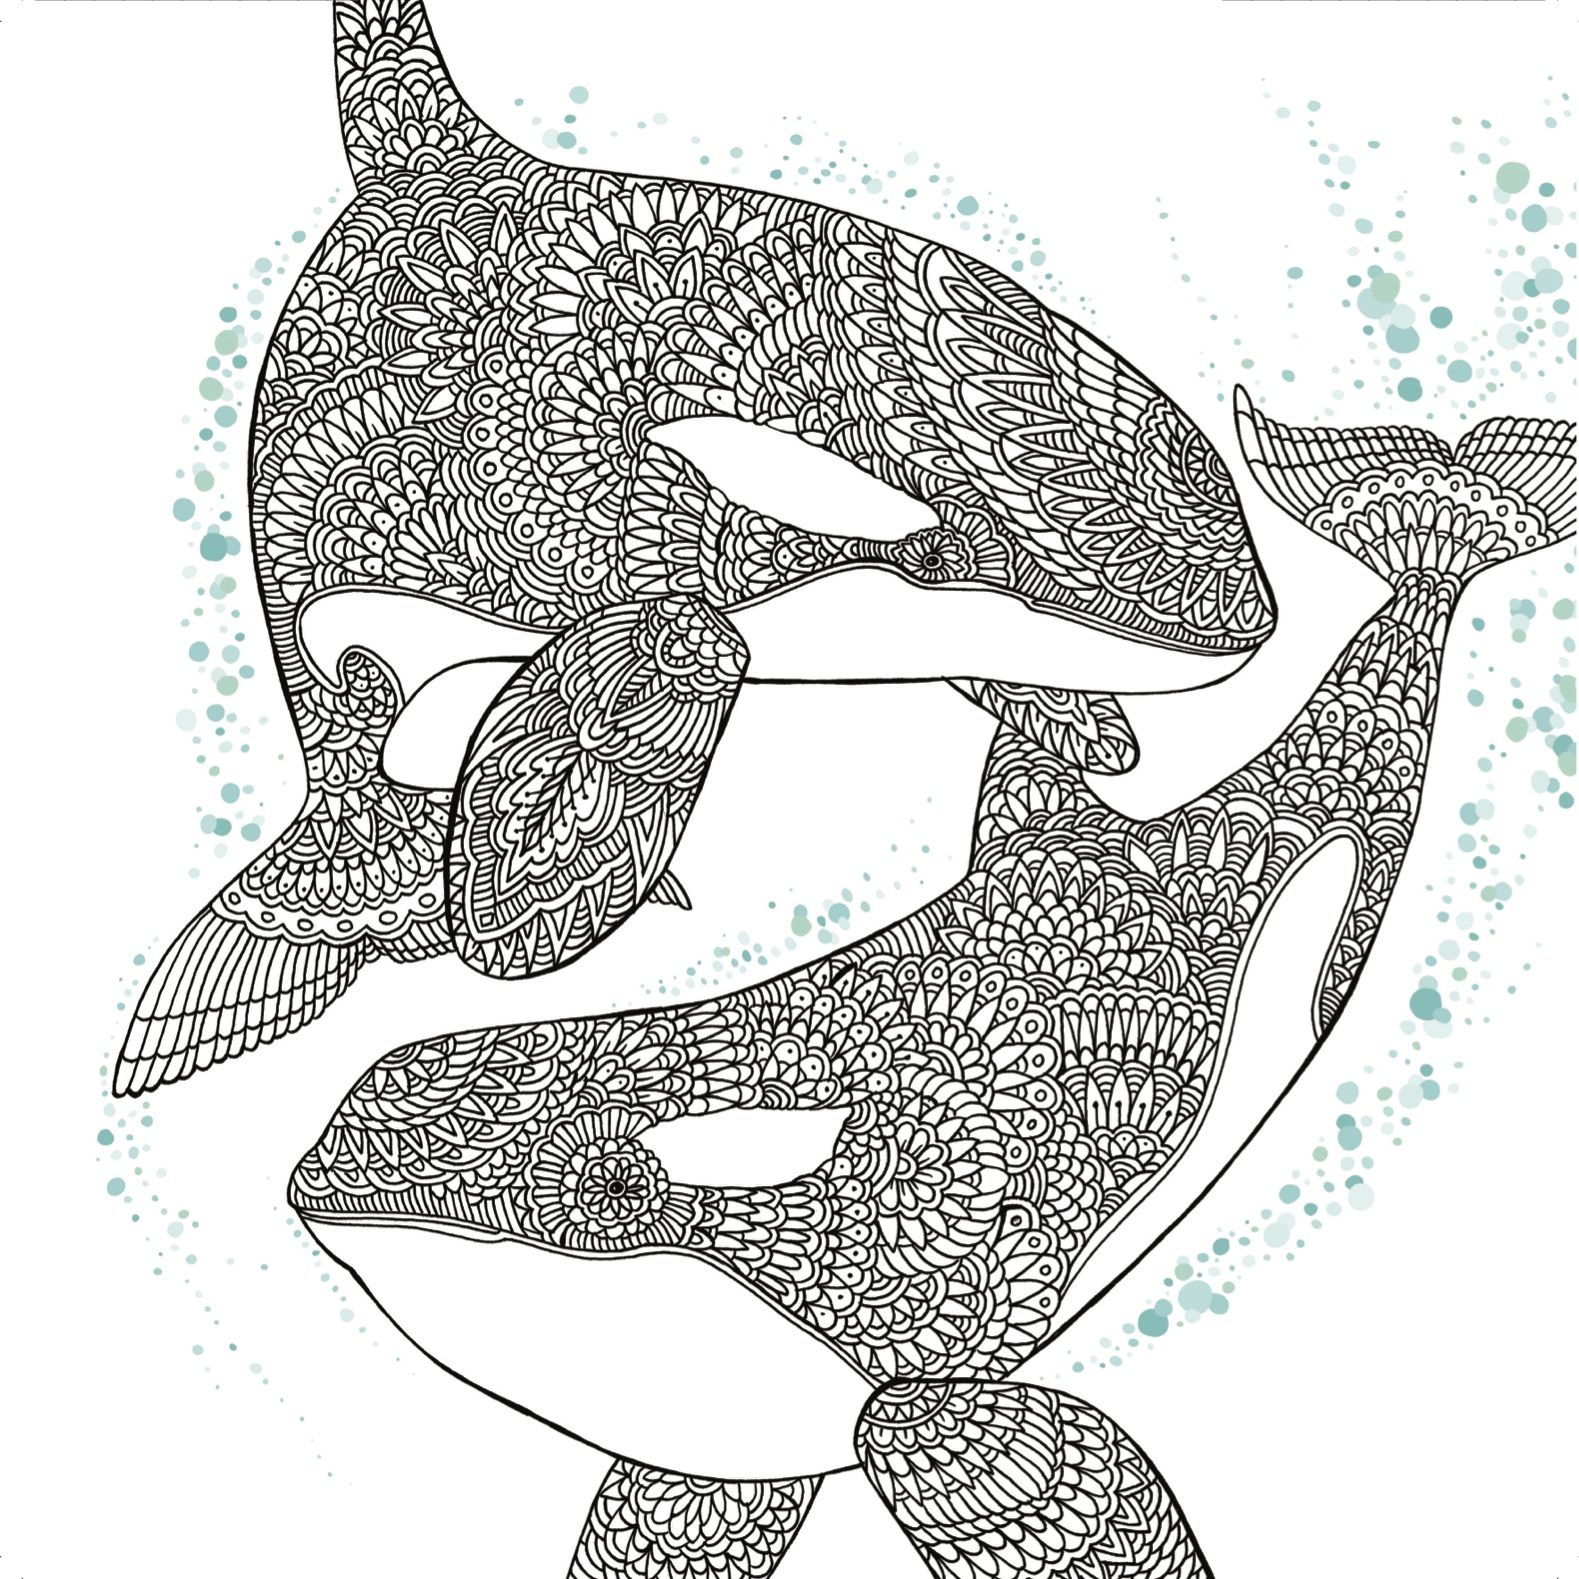 orca coloring pages Orca Whale Free Adult Coloring Book Page | Craft with Kids  orca coloring pages